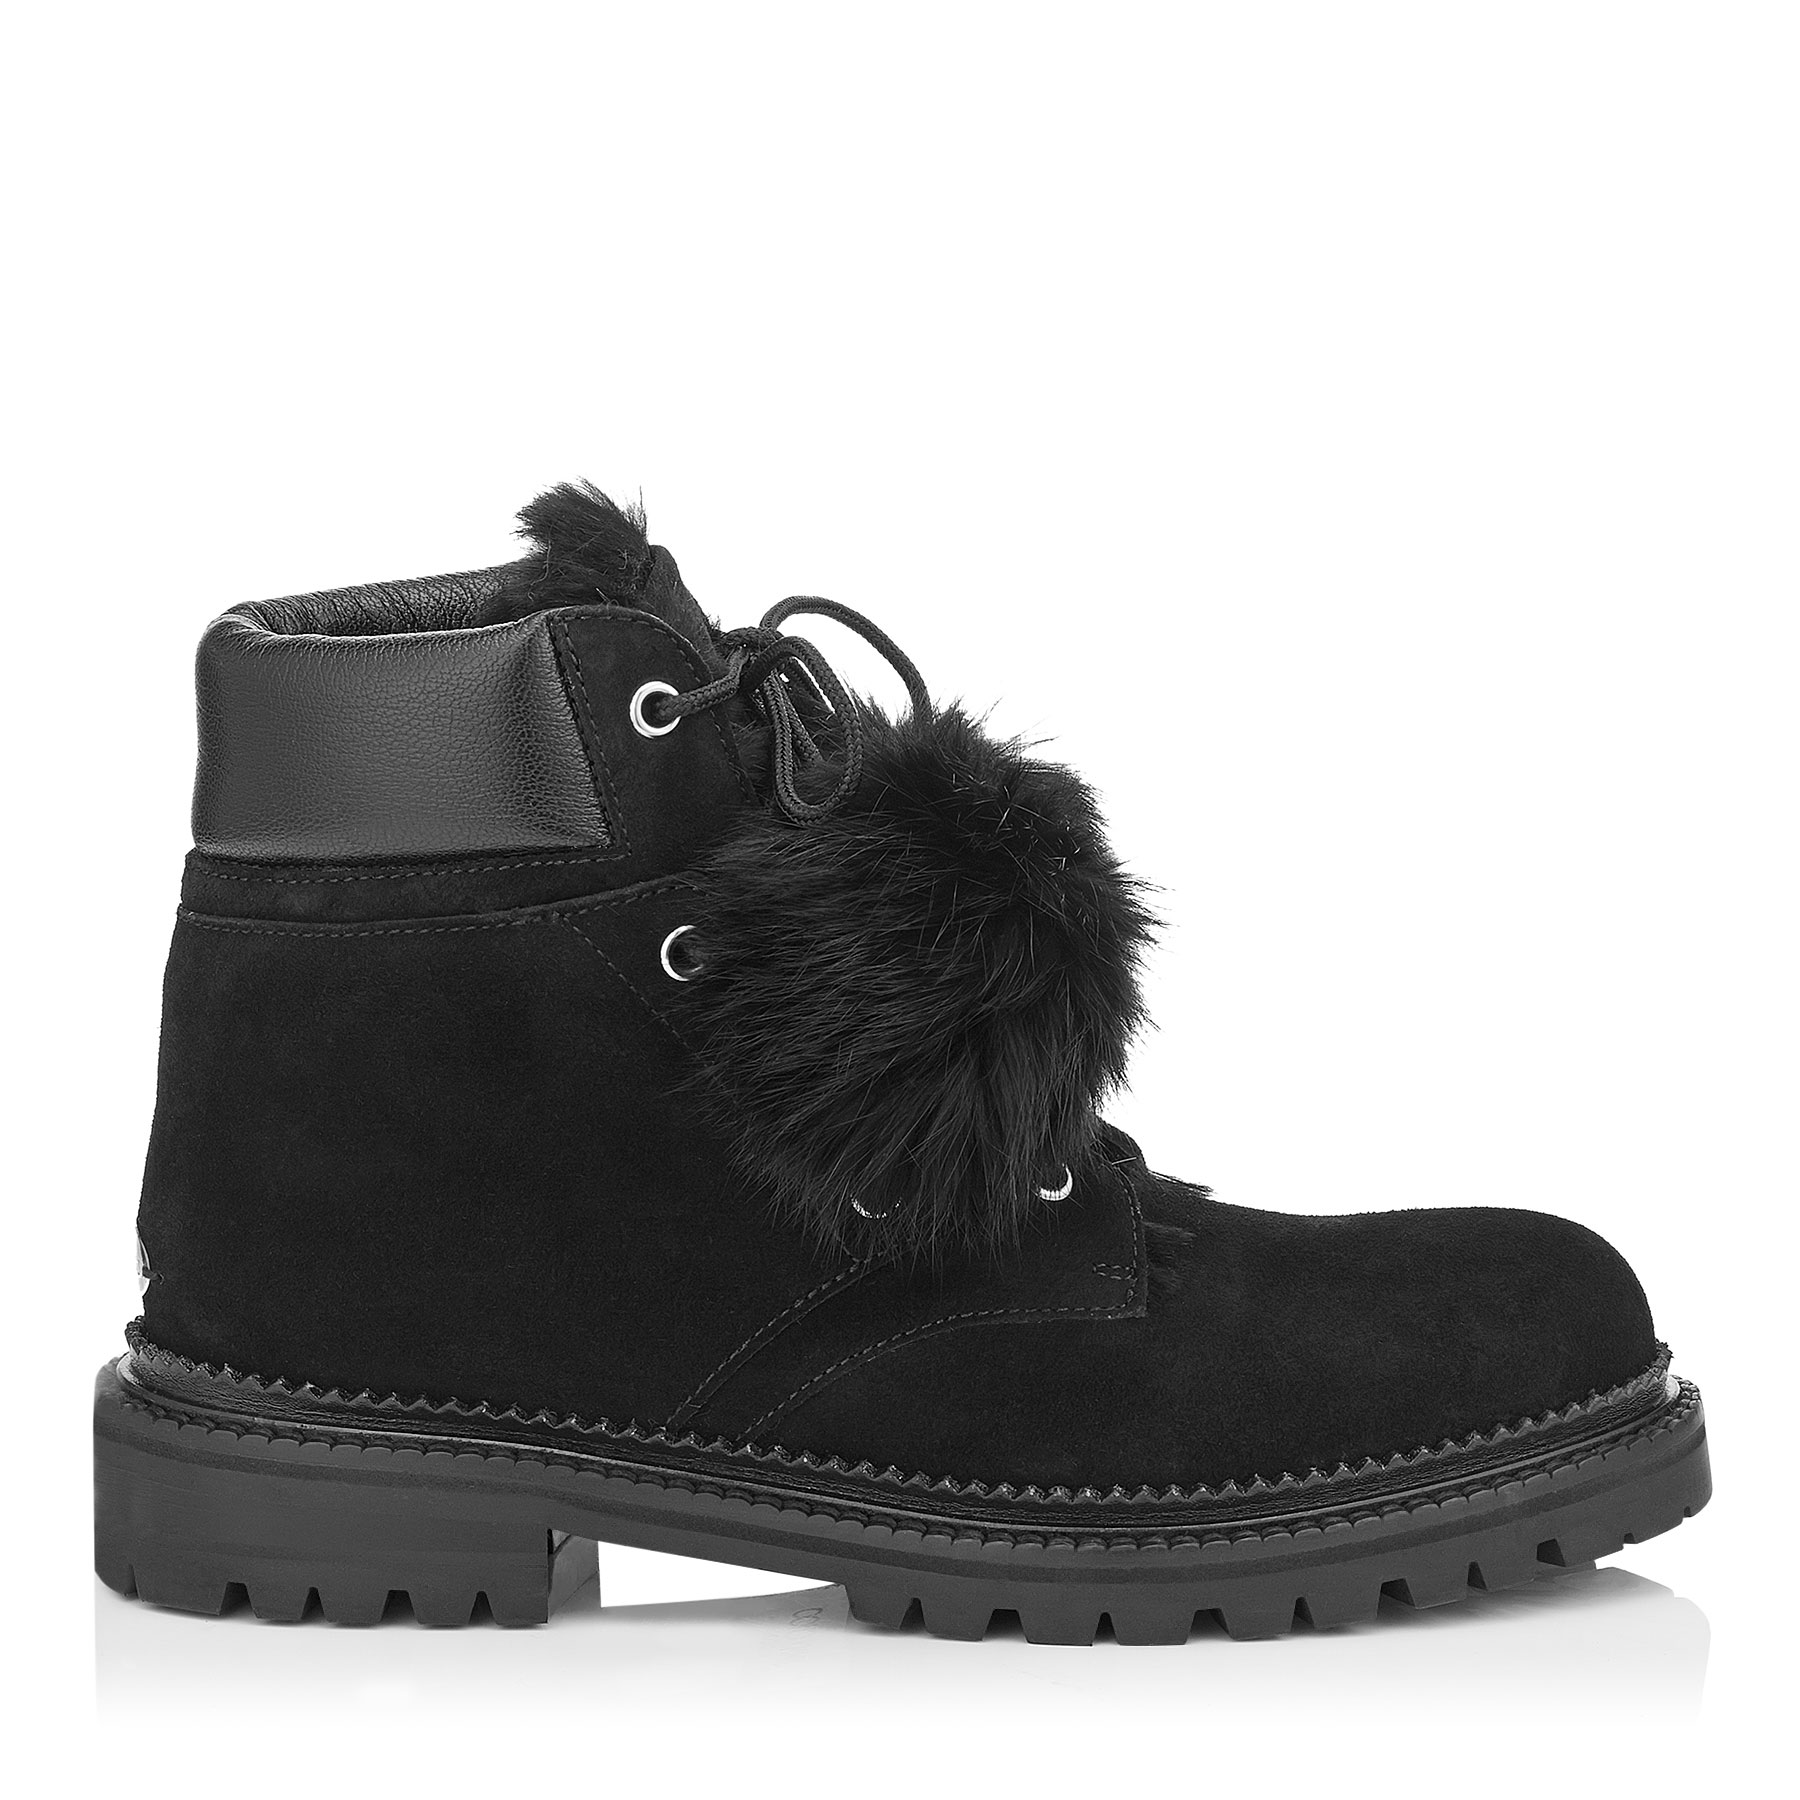 Photo of ELBA FLAT Black Suede Boots with Rabbit Fur Lining by Jimmy Choo womens shoes - buy Jimmy Choo footwear online